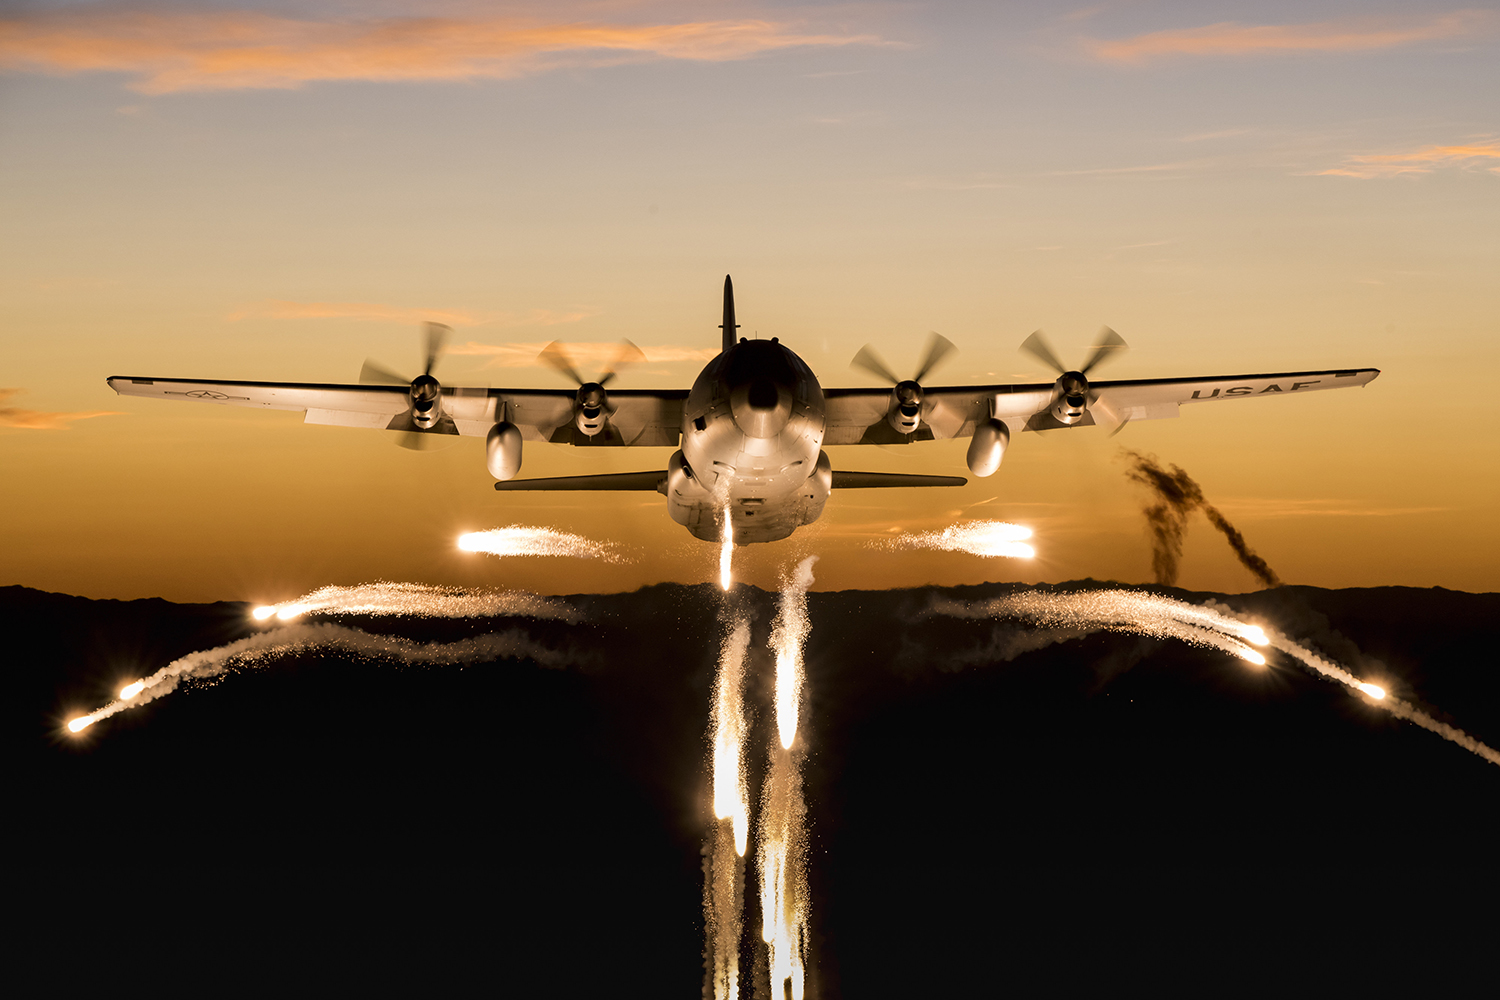 A C-130 Hercules from the Wyoming Air National Guard fires off flares over Camp Guernsey Joint Training Center, Wyo., during a training mission Sept. 24, 2019. (Staff Sgt. Jon Alderman/Air National Guard)